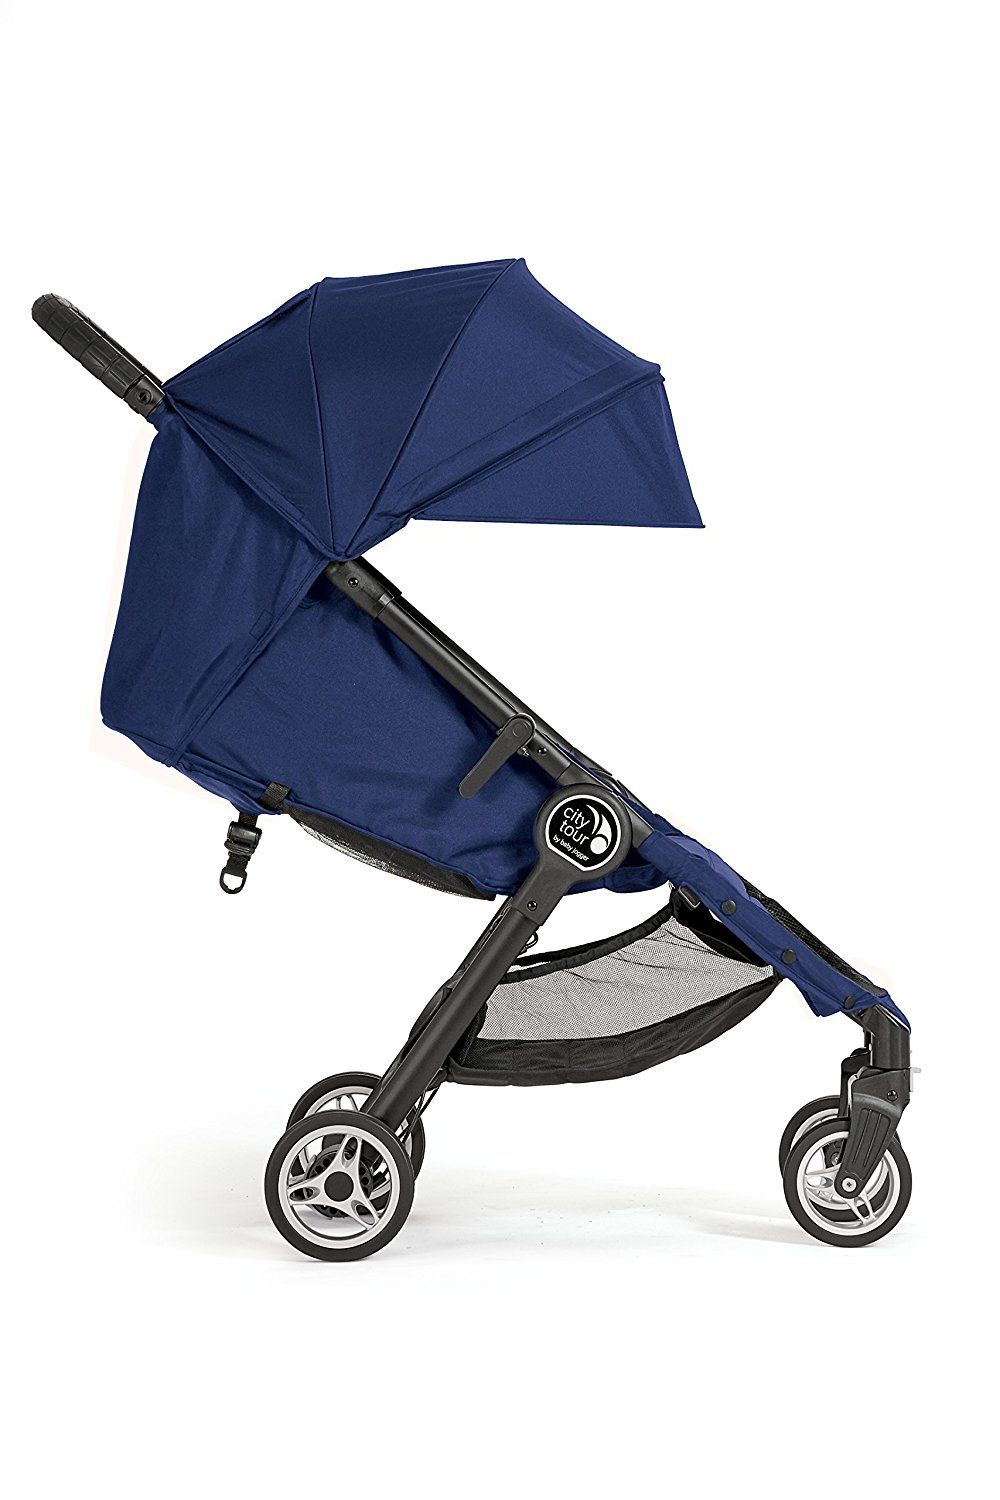 Baby Jogger City Tour stroller, Onyx Baby